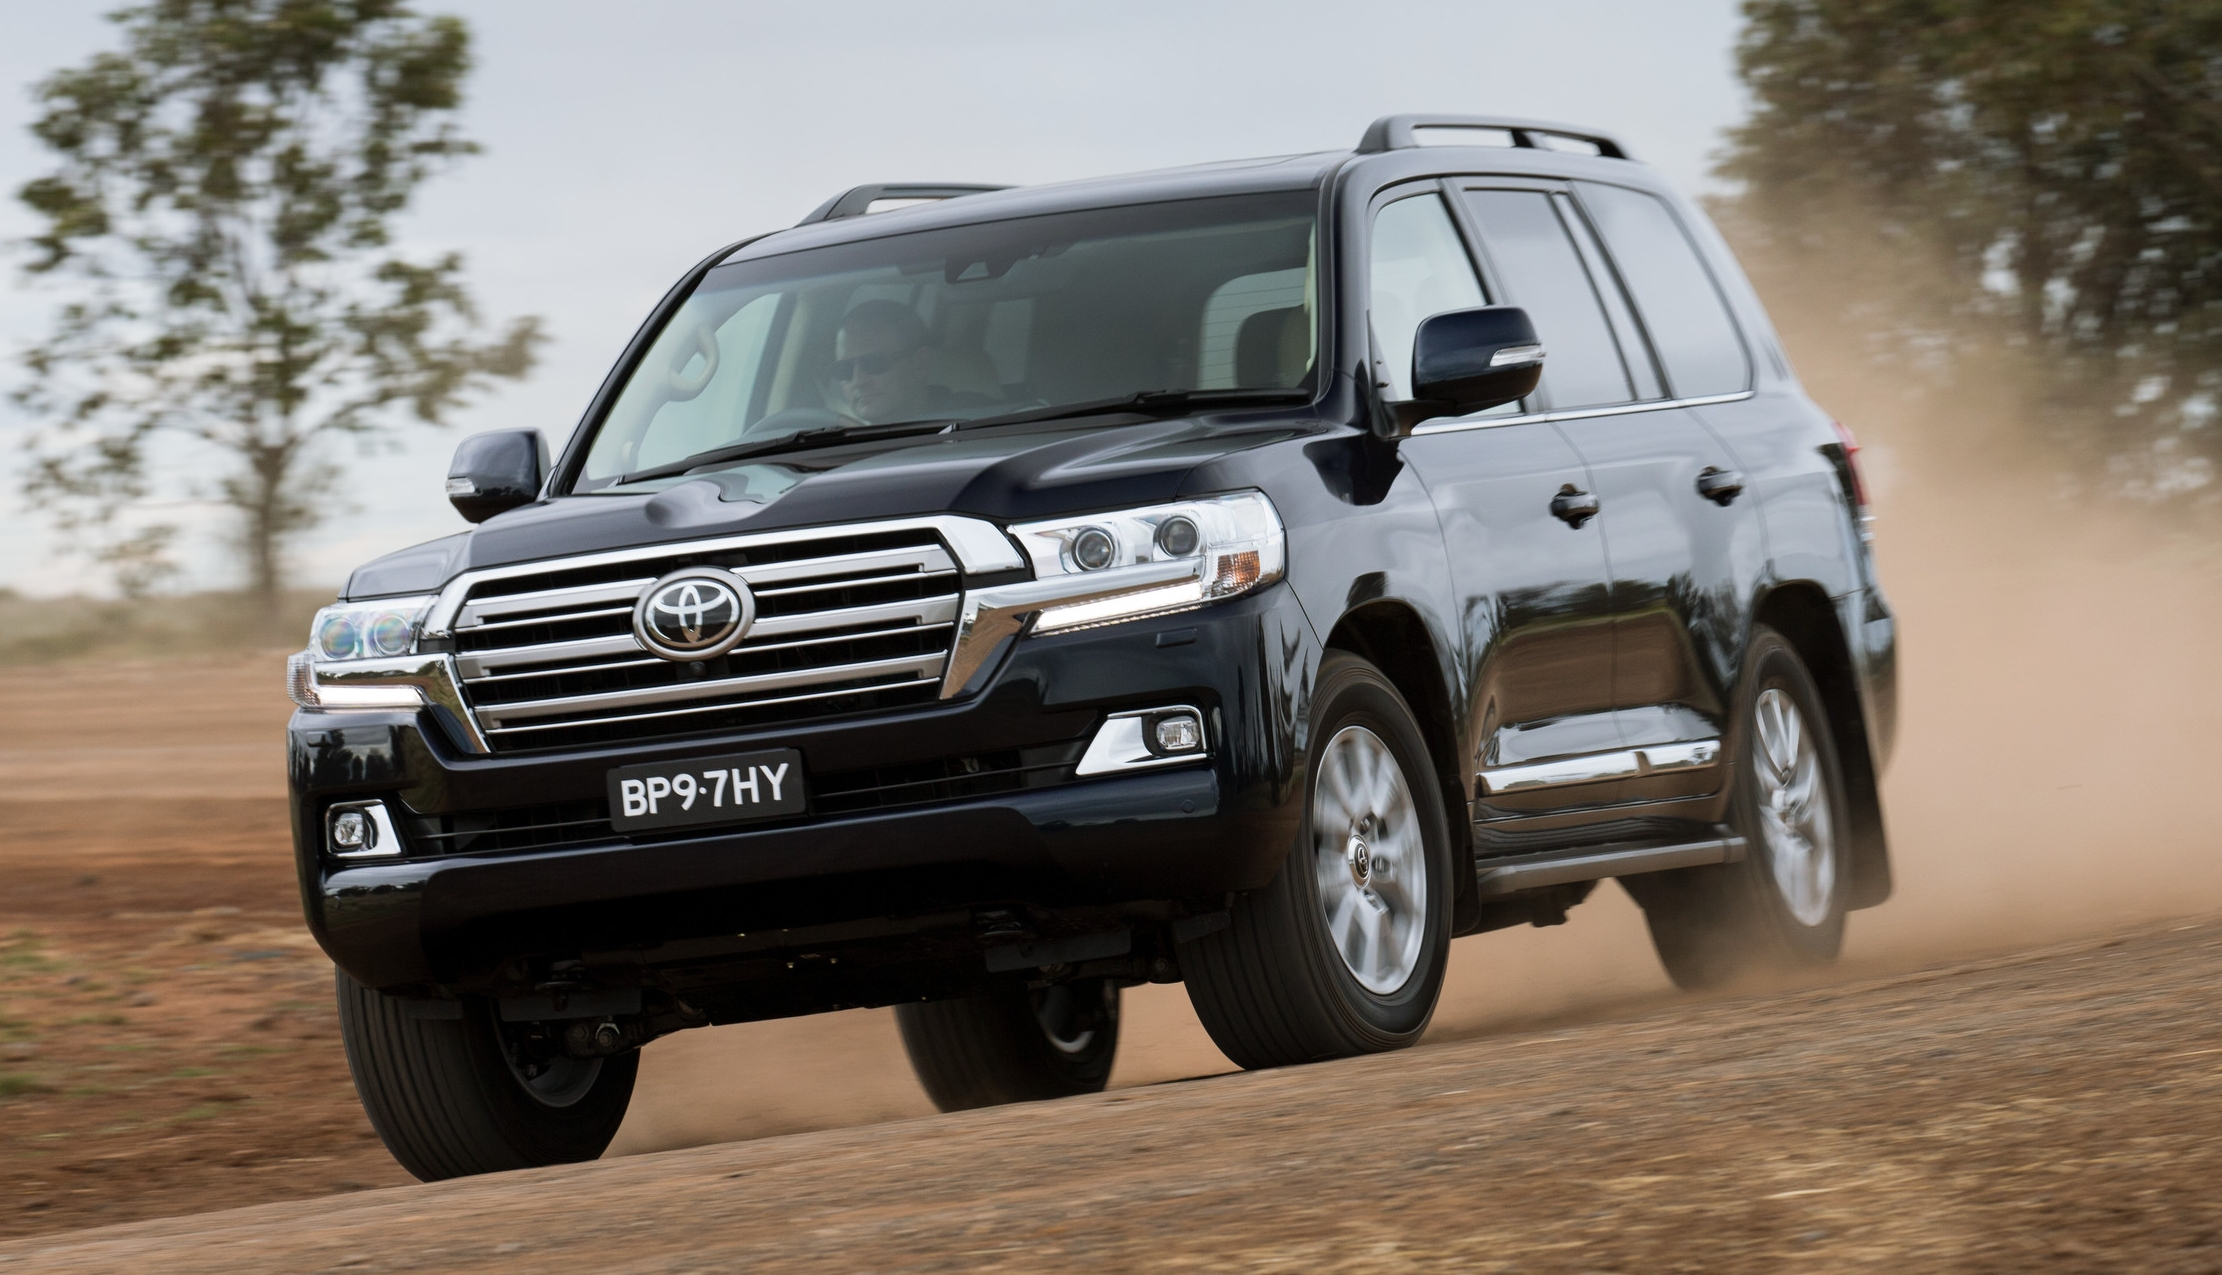 2016 toyota land cruiser the j200 facelift debuts. Black Bedroom Furniture Sets. Home Design Ideas